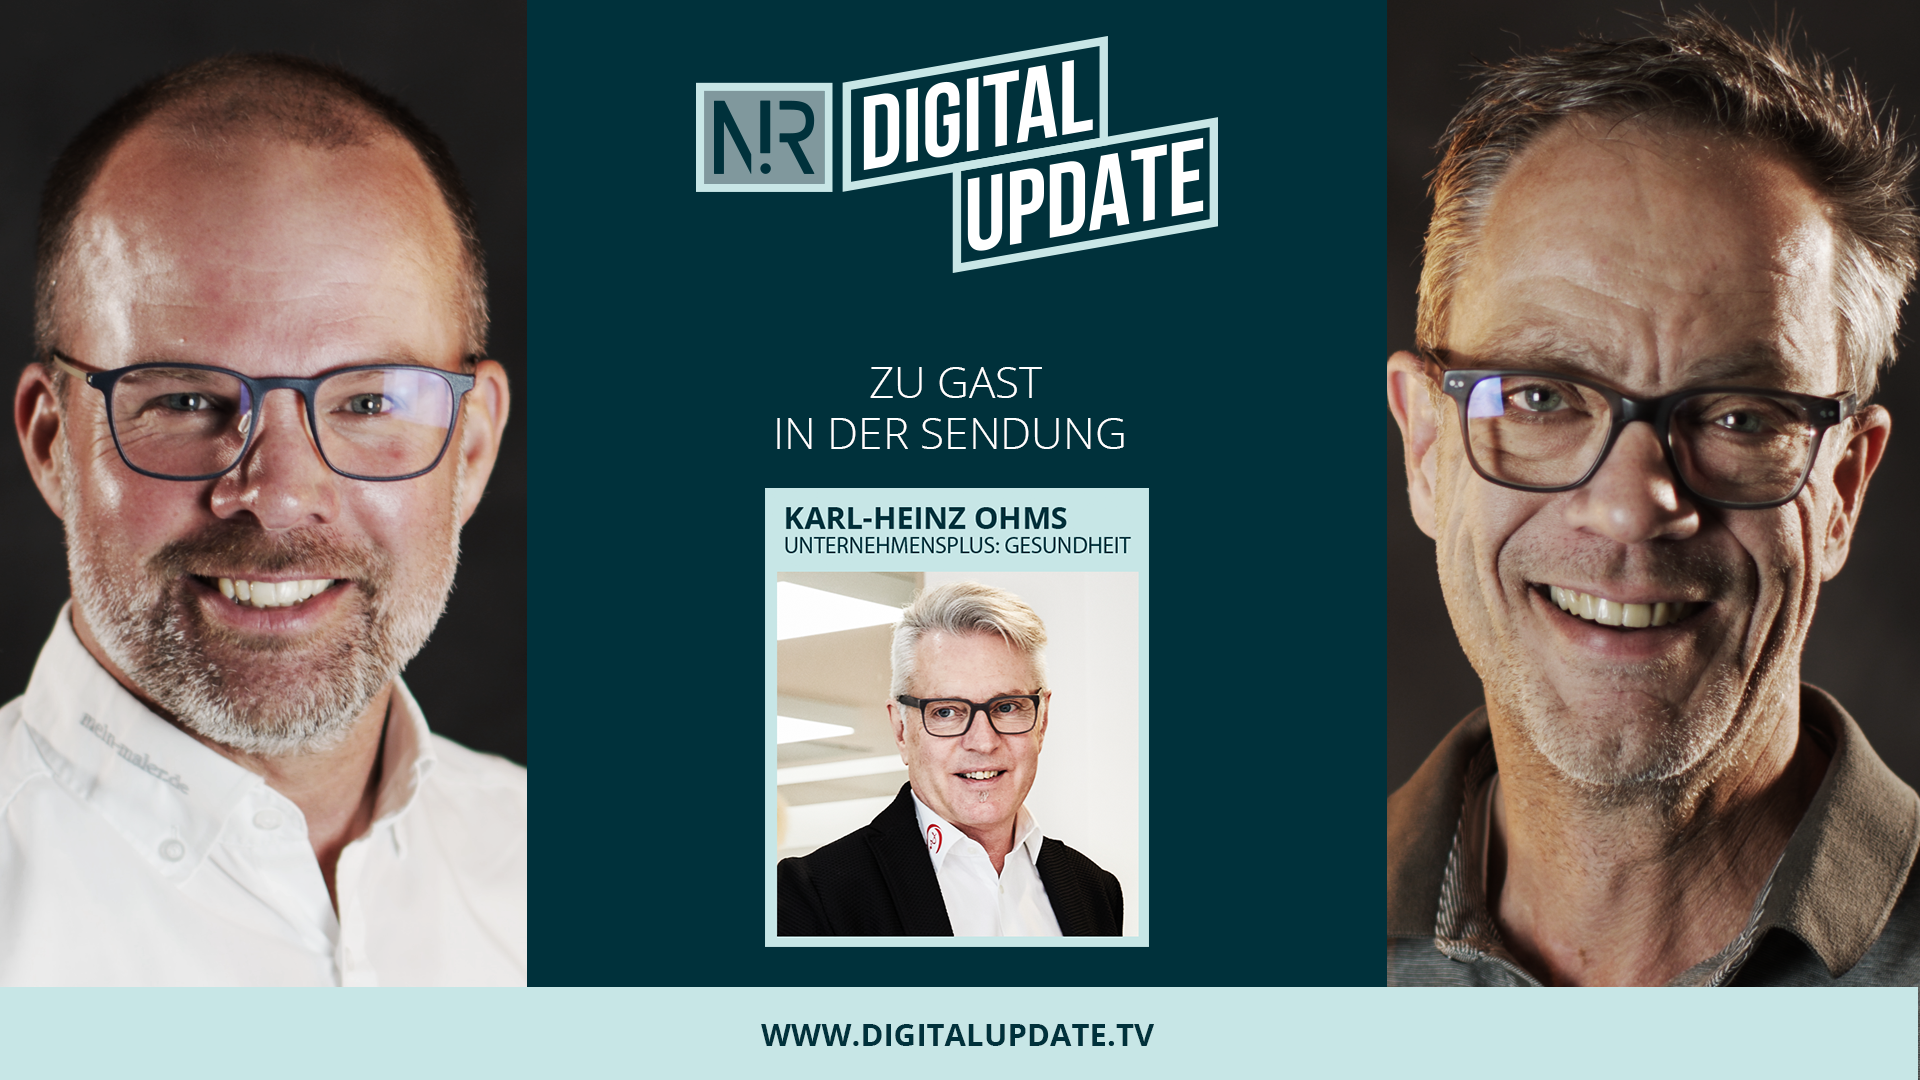 Digitalupdate mit Karl-Heinz Ohms